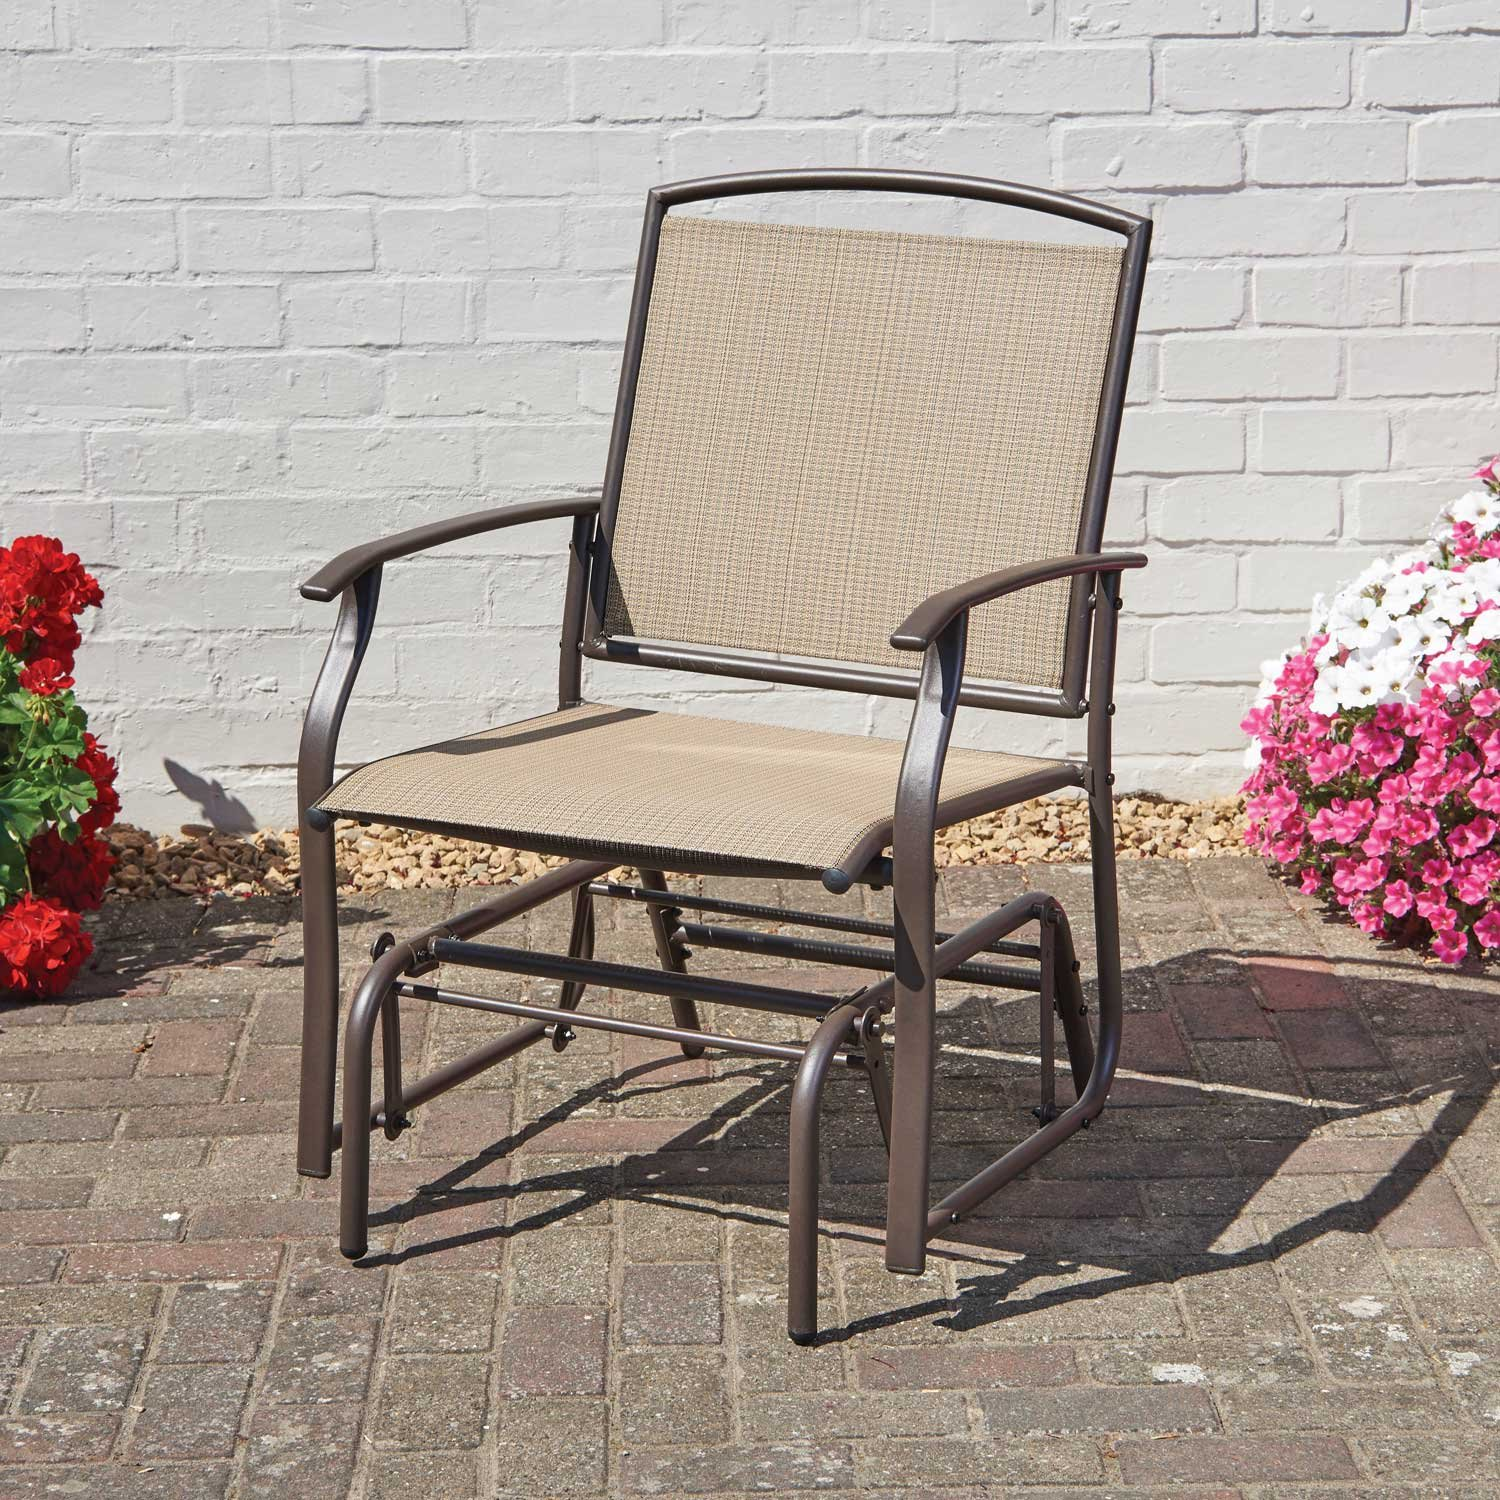 Garden Glider Chair Gentle Rocking Action Beige Textiline Bronze Steel Frame Weather And Stain Resistant Gablemere